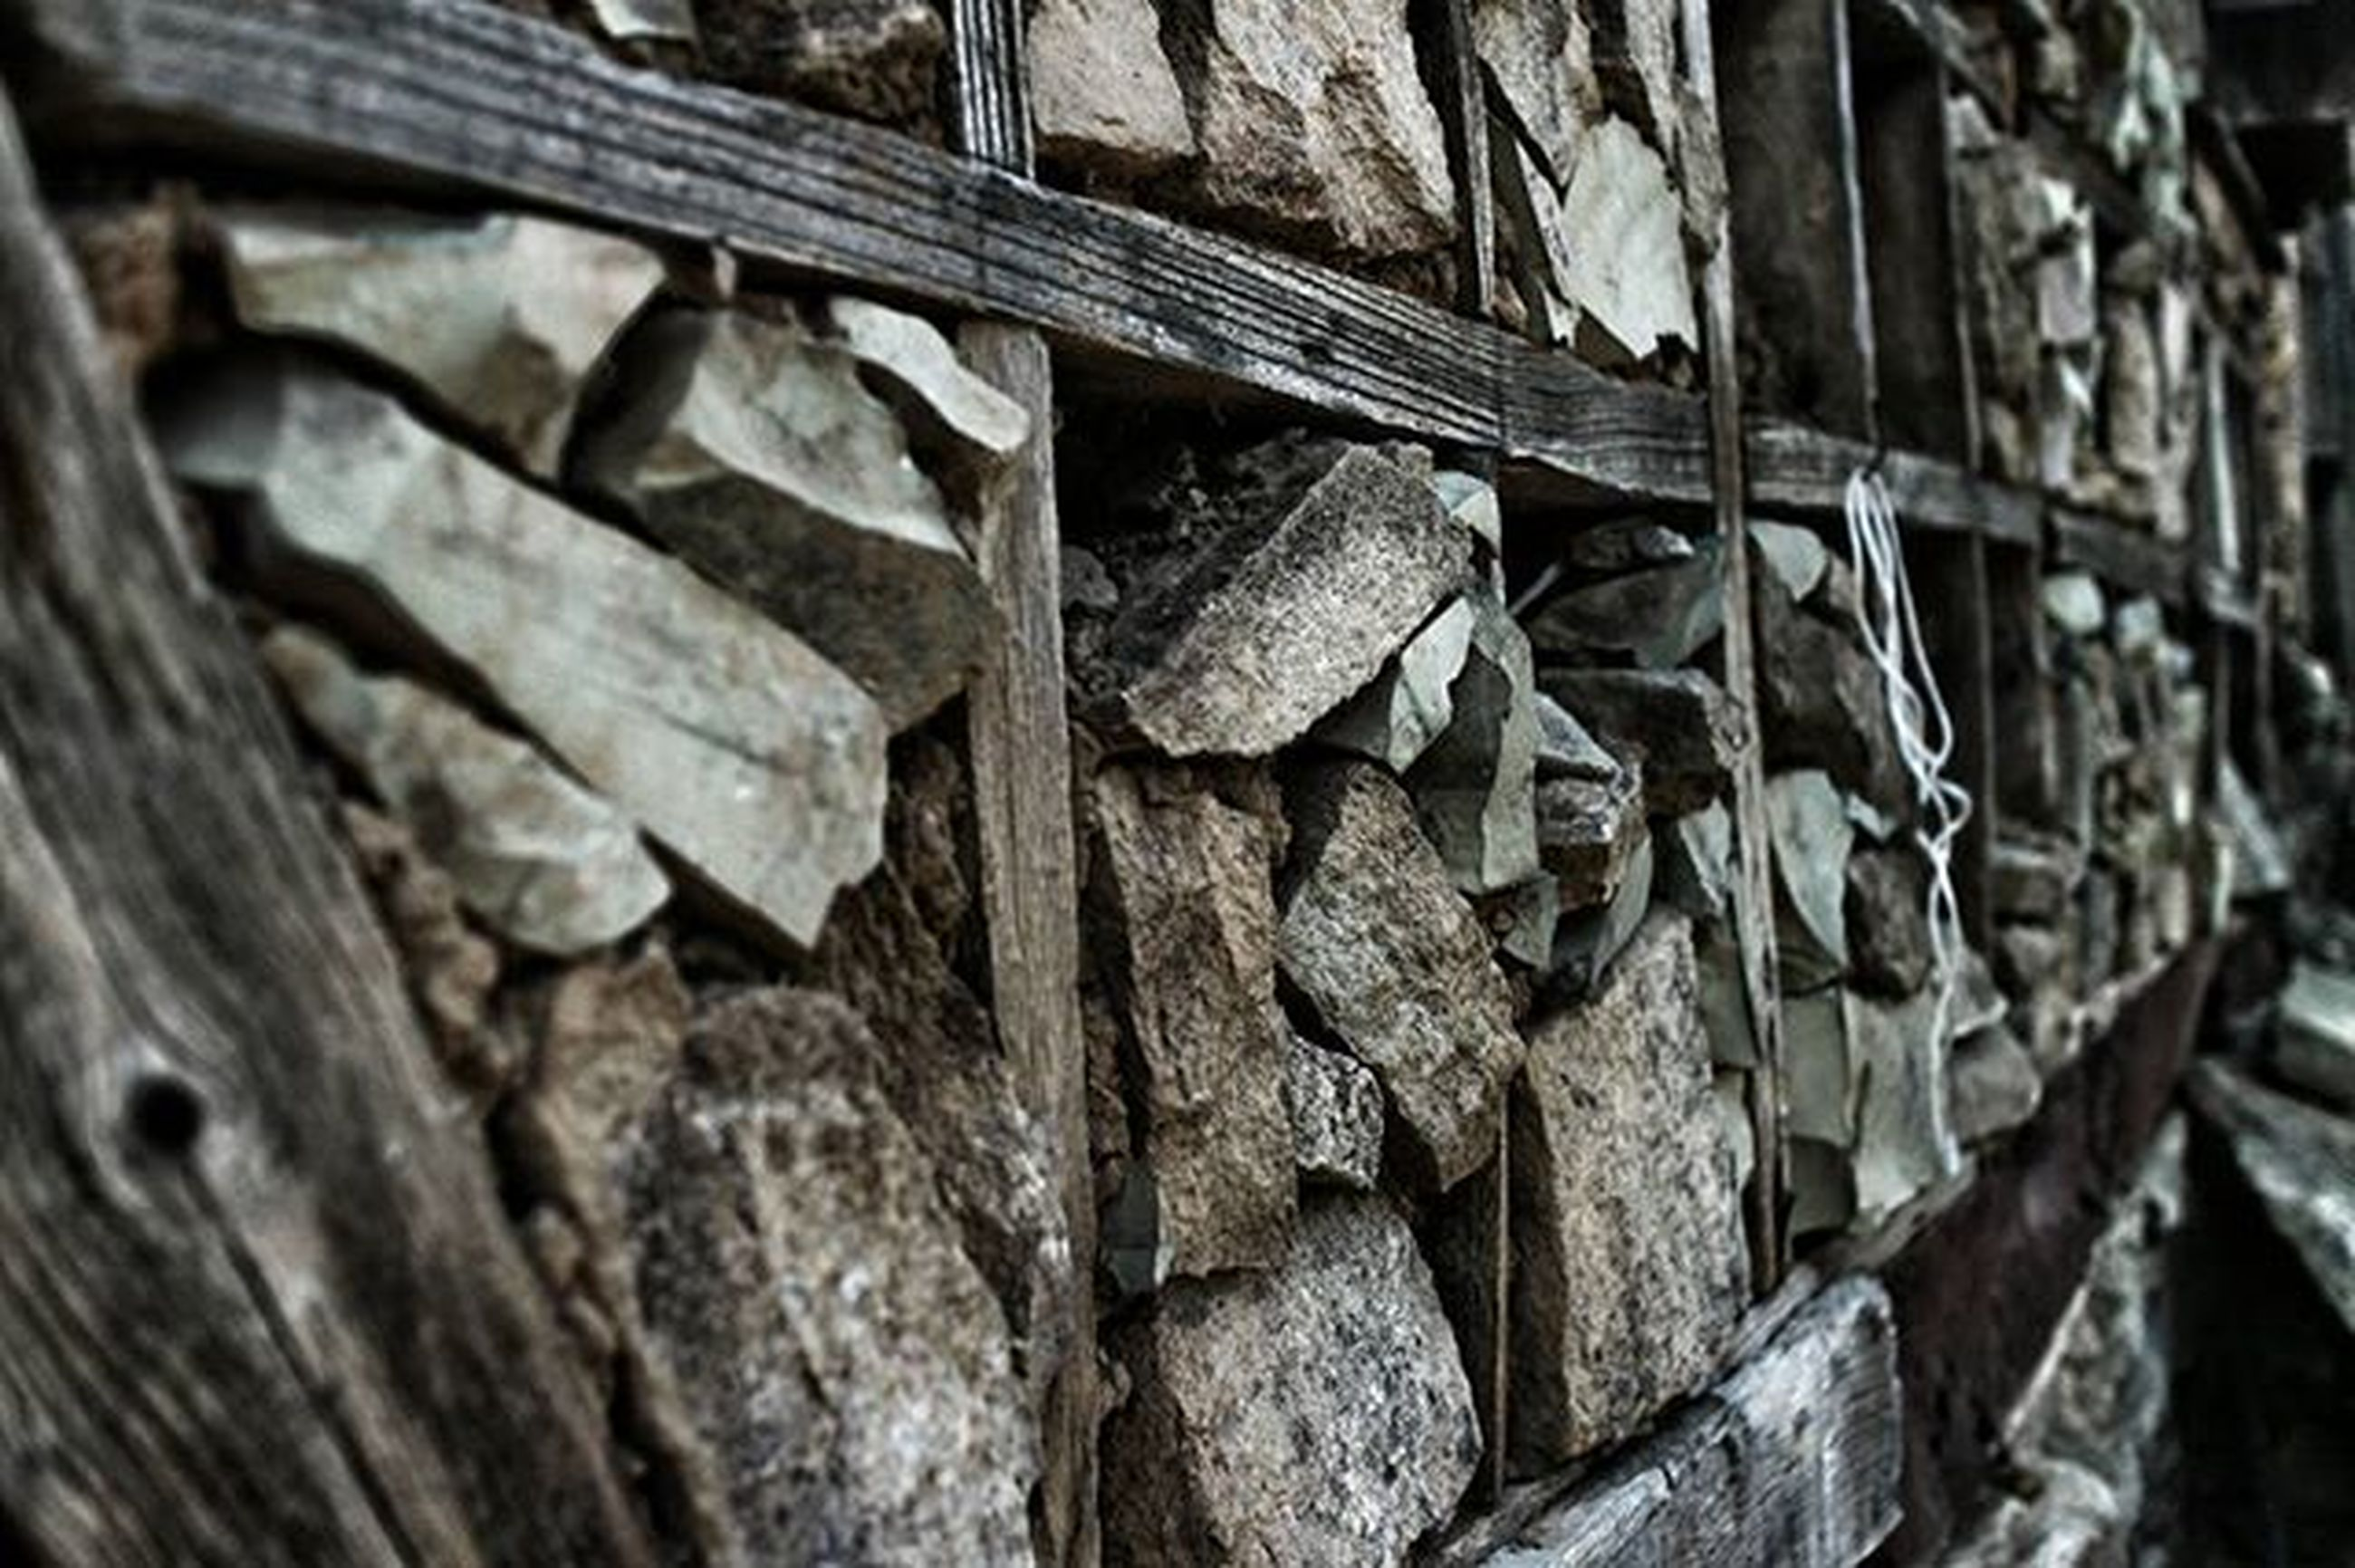 wood - material, close-up, large group of objects, abundance, old, stack, textured, wooden, wood, full frame, backgrounds, damaged, log, firewood, weathered, rusty, abandoned, deterioration, lumber industry, metal